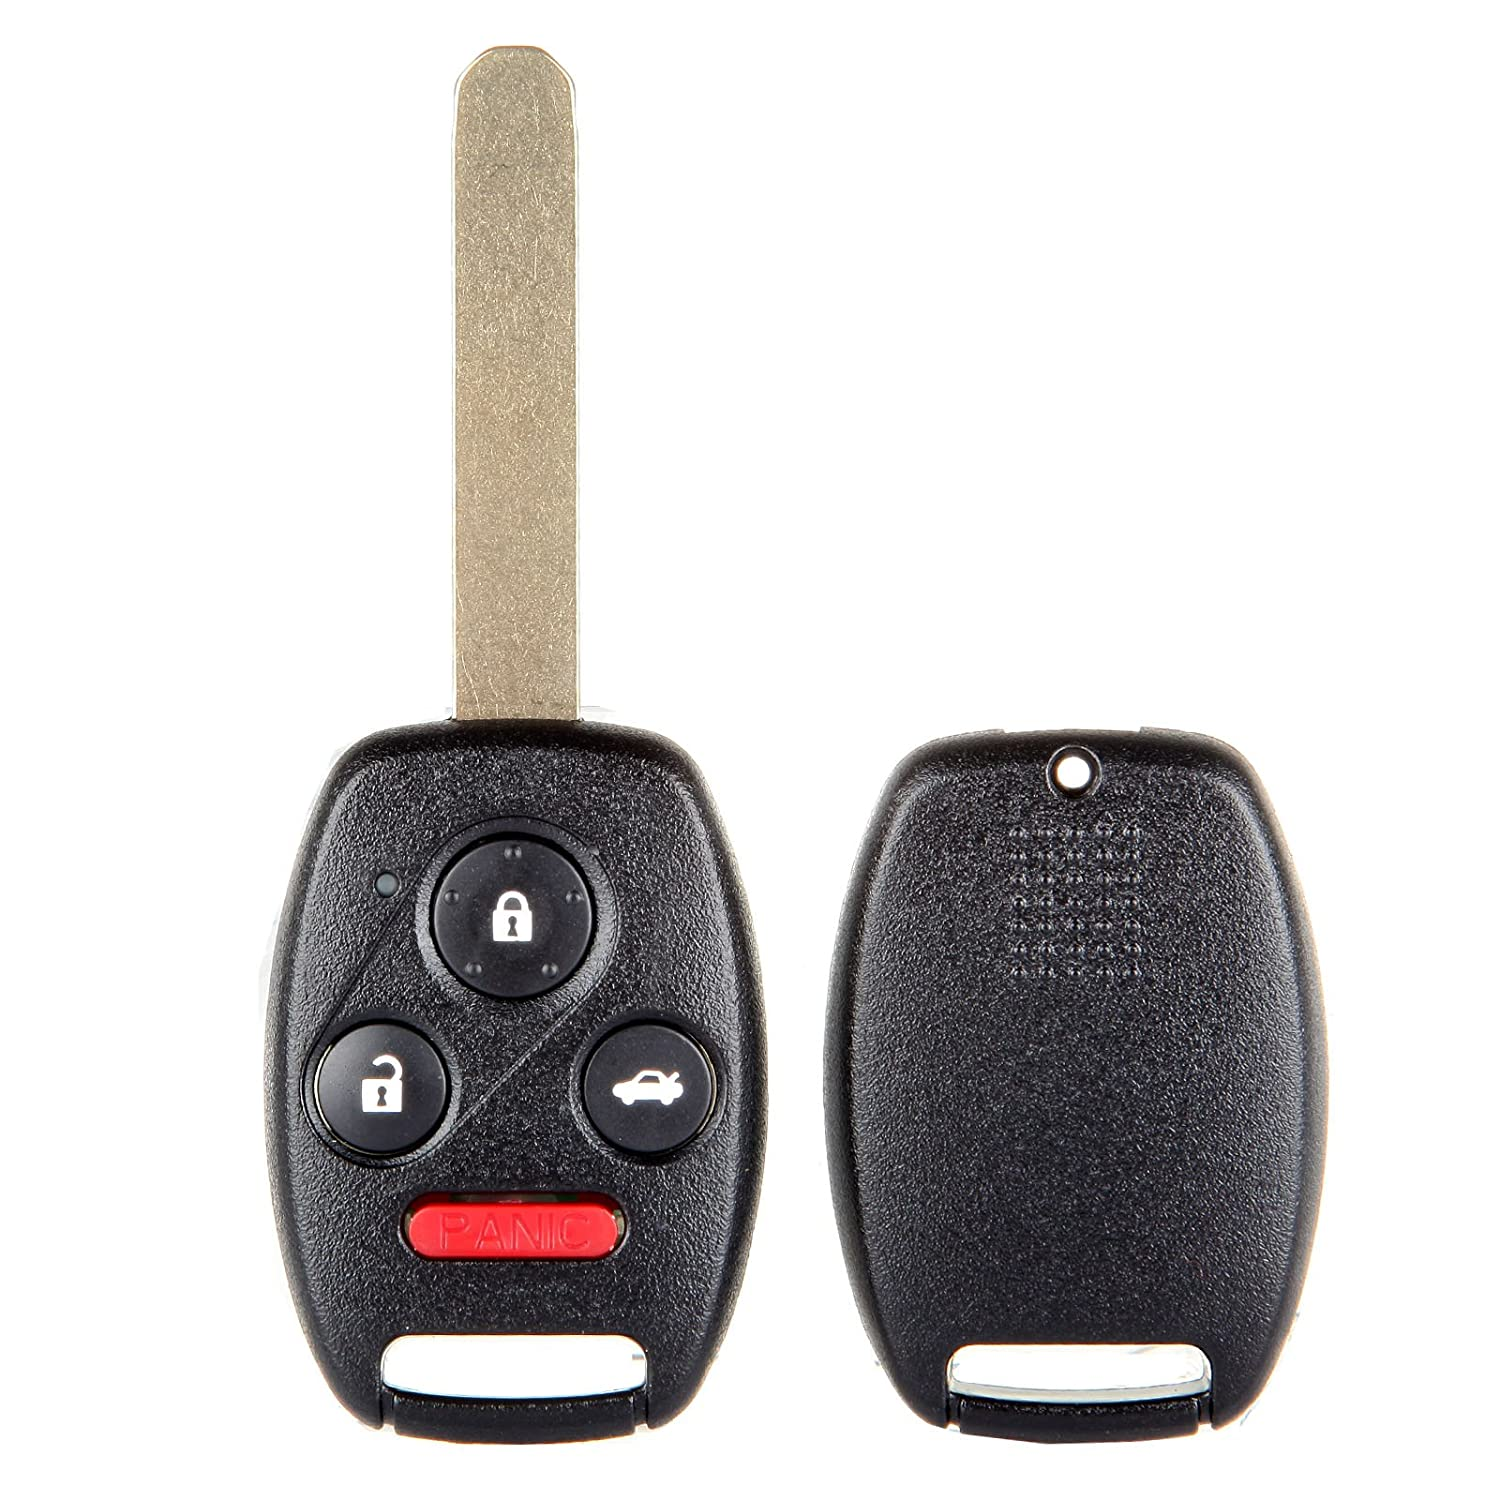 Pack of 2 800728-5211-1804091211 ECCPP Replacement fit for Uncut 313.8MHz Keyless Entry Remote Key Fob Honda Pilot//Accord KR55WK49308